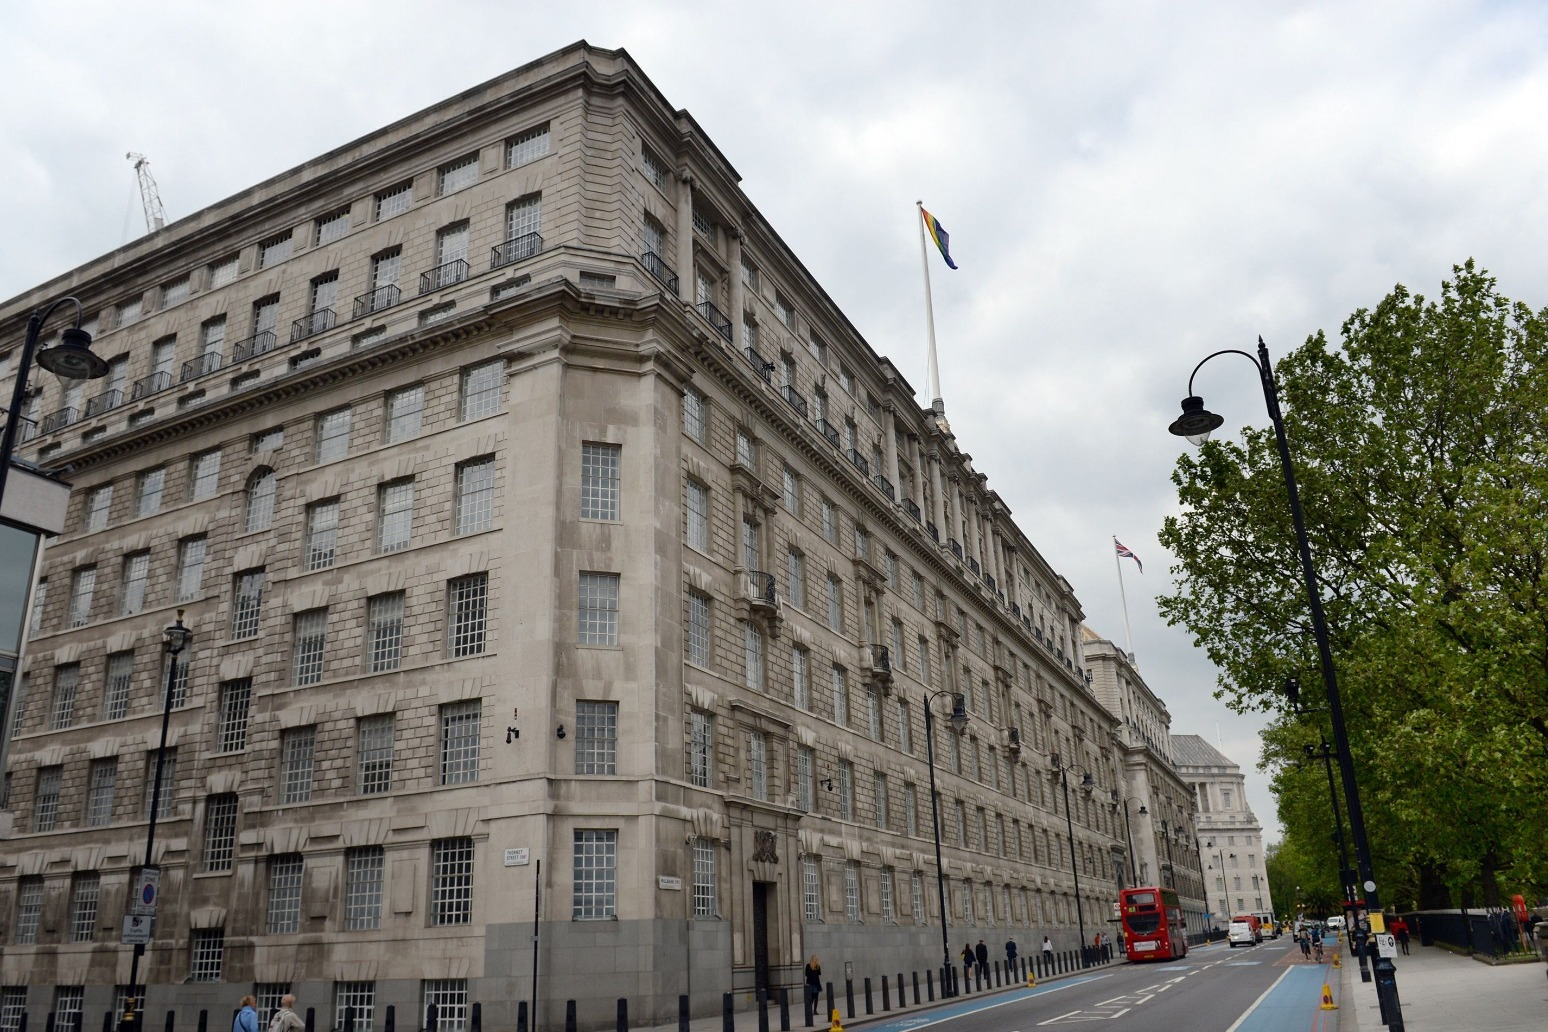 RULING DUE ON CLAIMS THAT MI5 UNLAWFULLY ALLOWED INFORMANTS TO COMMIT CRIMES